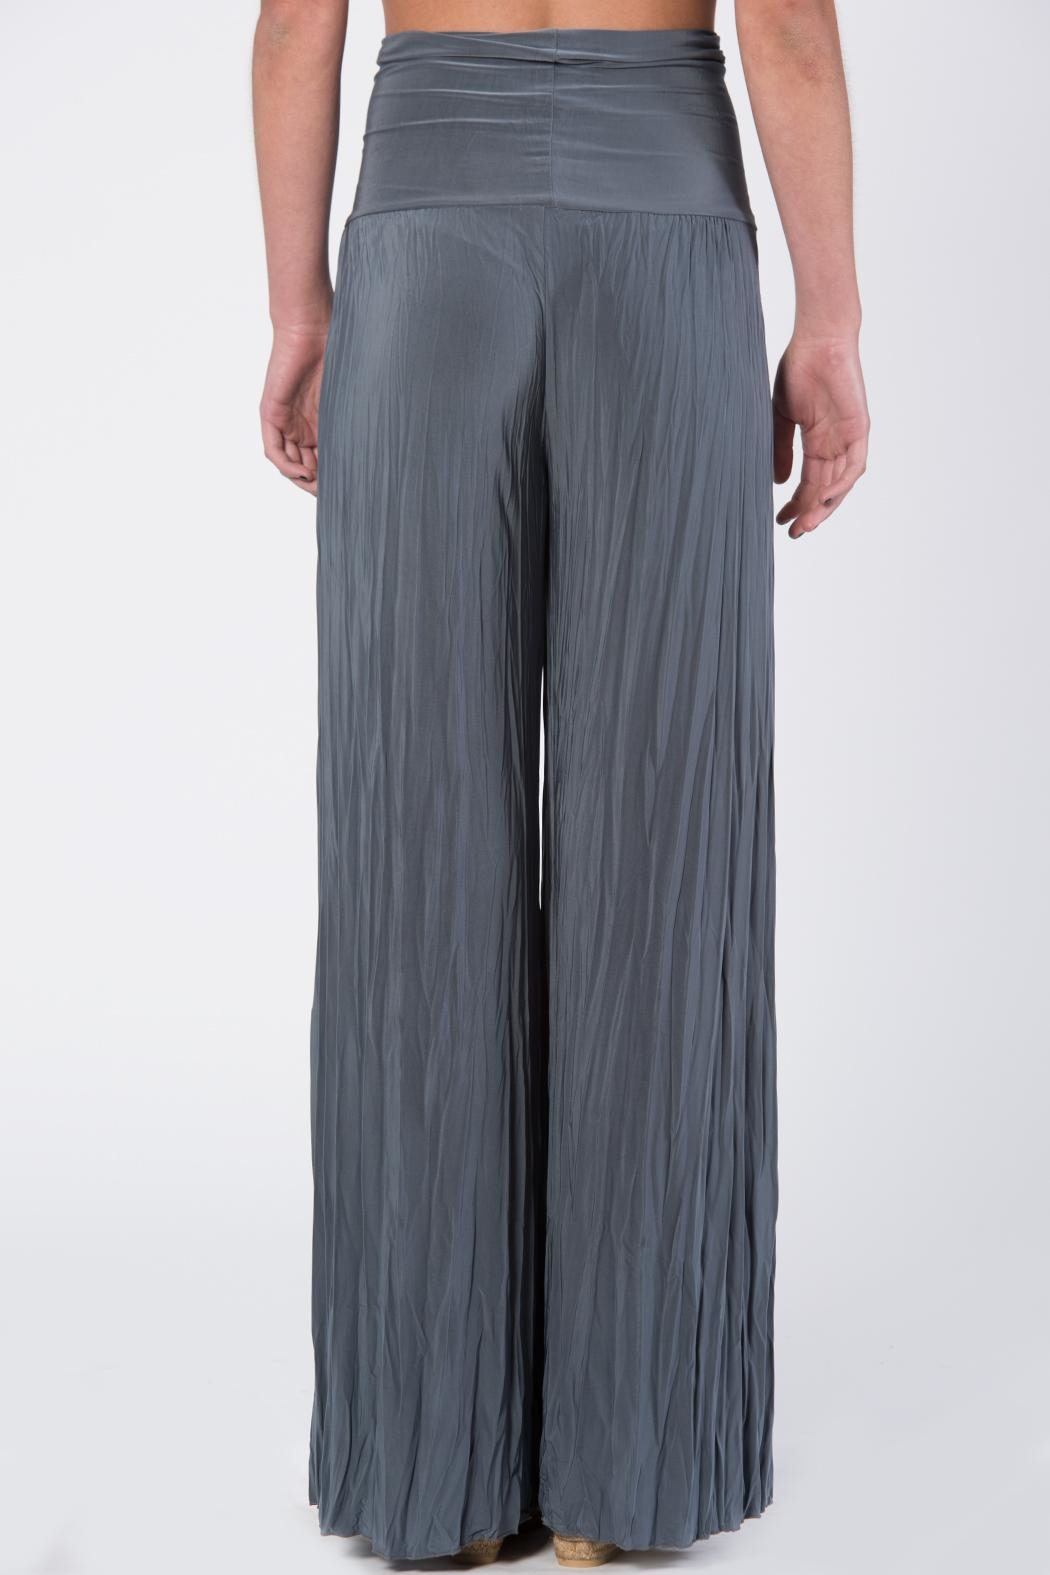 Catwalk Grey Pleated Pants - Front Full Image